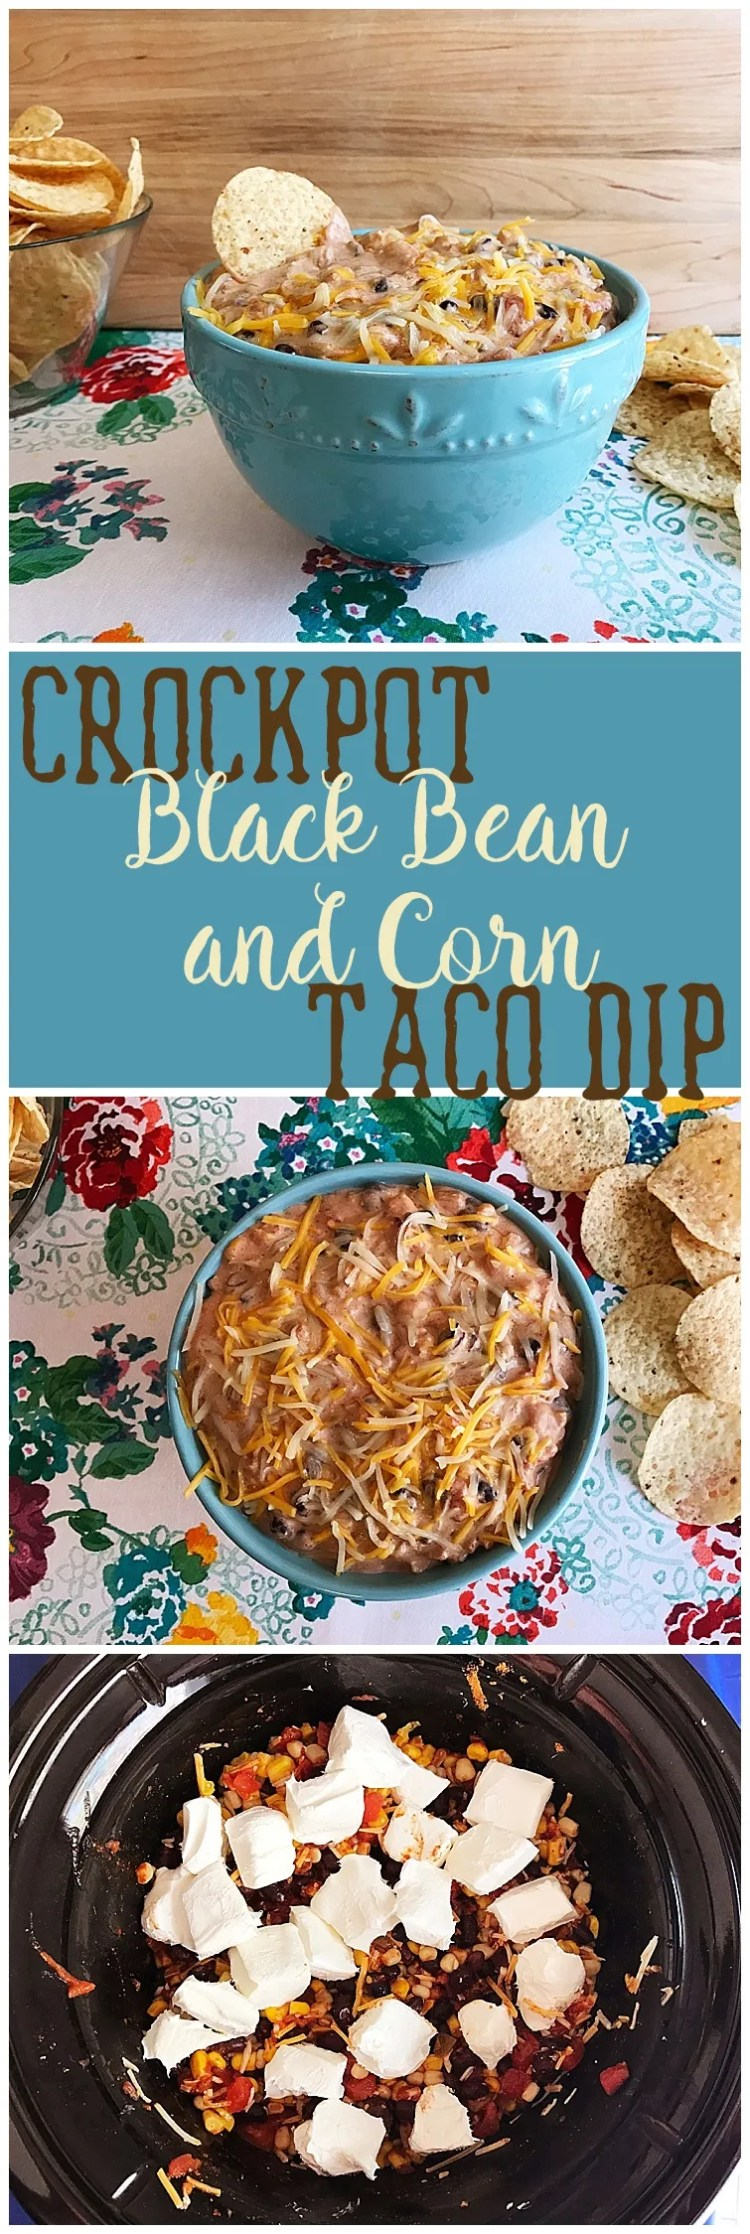 Crock Pot Black Bean and Corn Taco Dip | appetizer | taco dip | crockpot | recipe | Try this flavor packed appetizer, recipe from Six Clever Sisters.